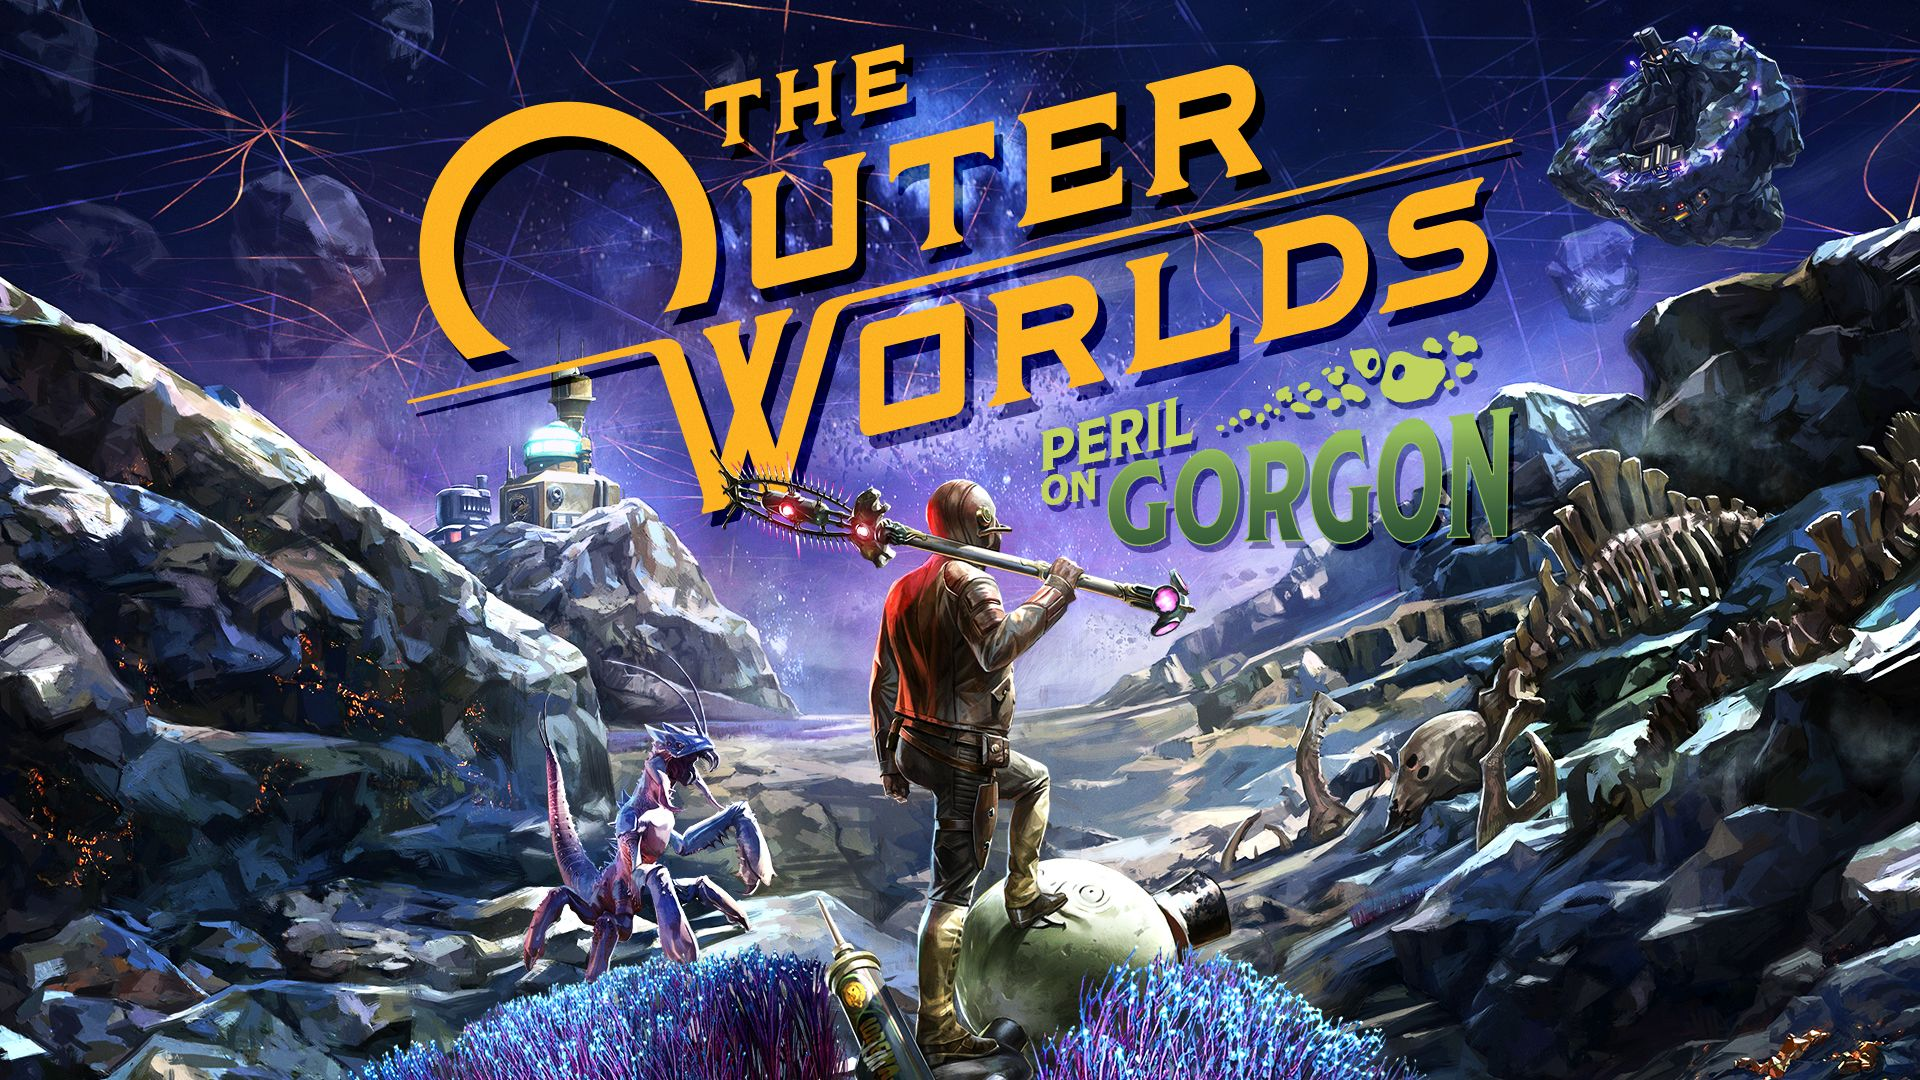 The Outer Worlds - Peril on Gorgon